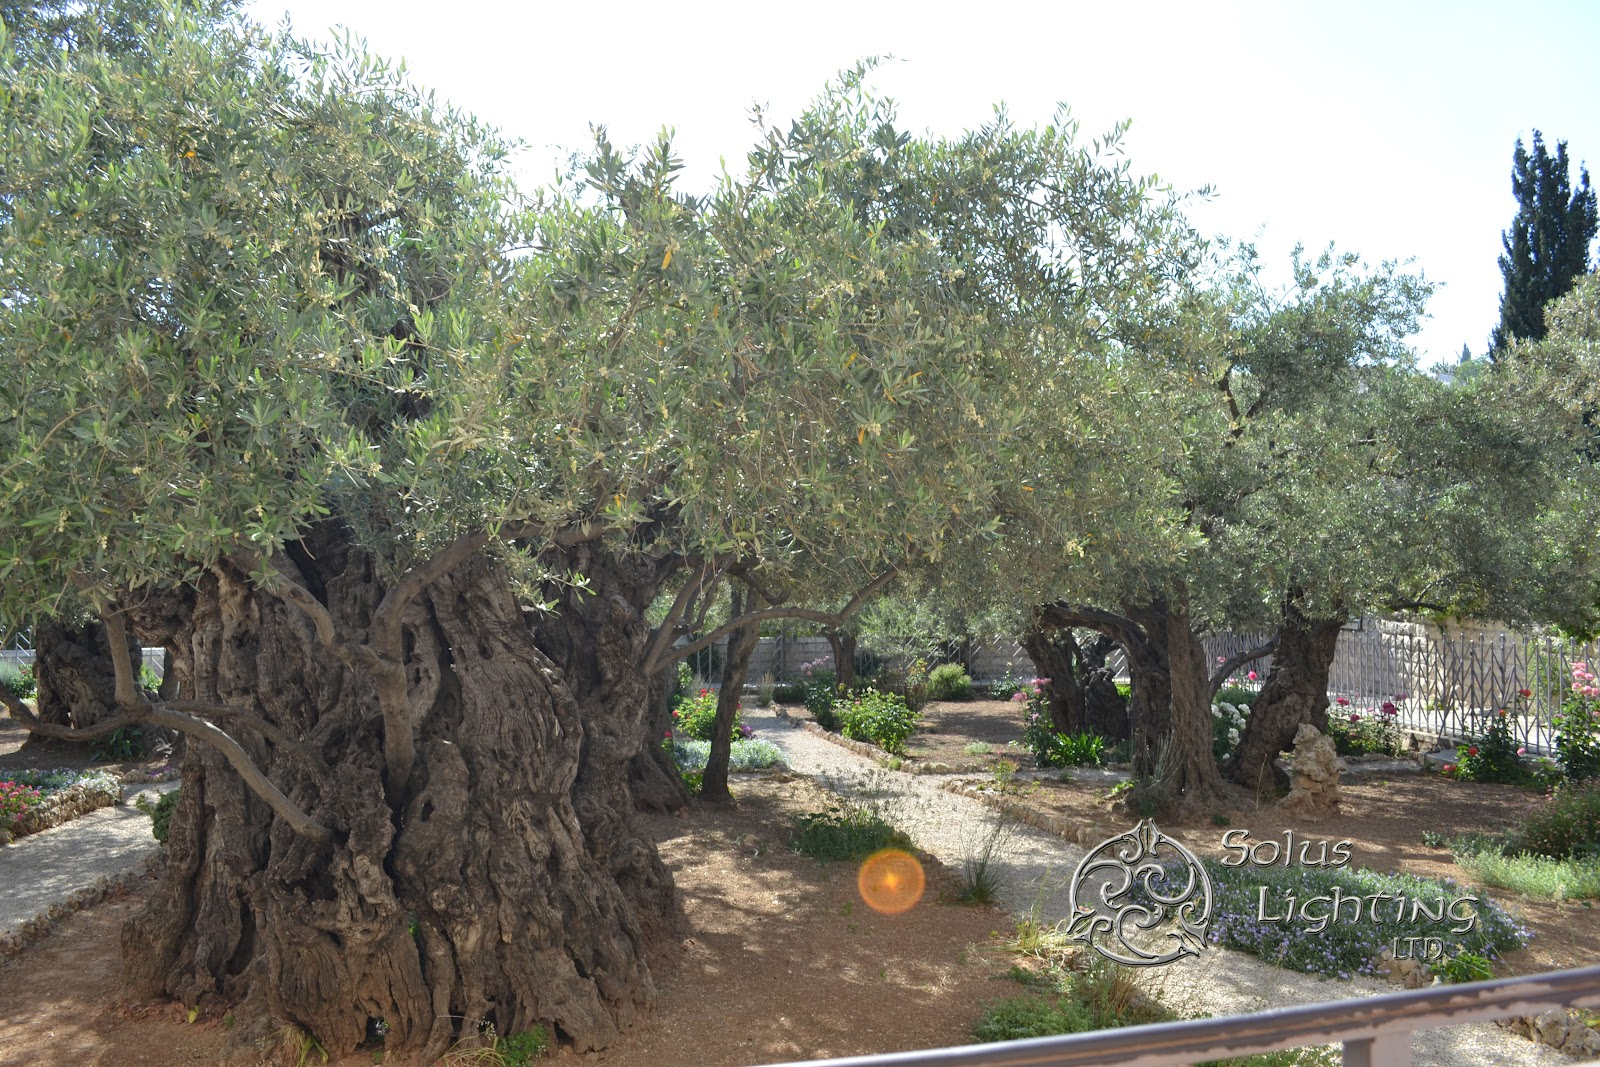 After we floated out of the Dead Sea we continued our travels into Jerusalem. The photo above is of the Garden of Gethsemani which is a place located on ... & Solus Lighting goes international | Solus Lighting LTD azcodes.com